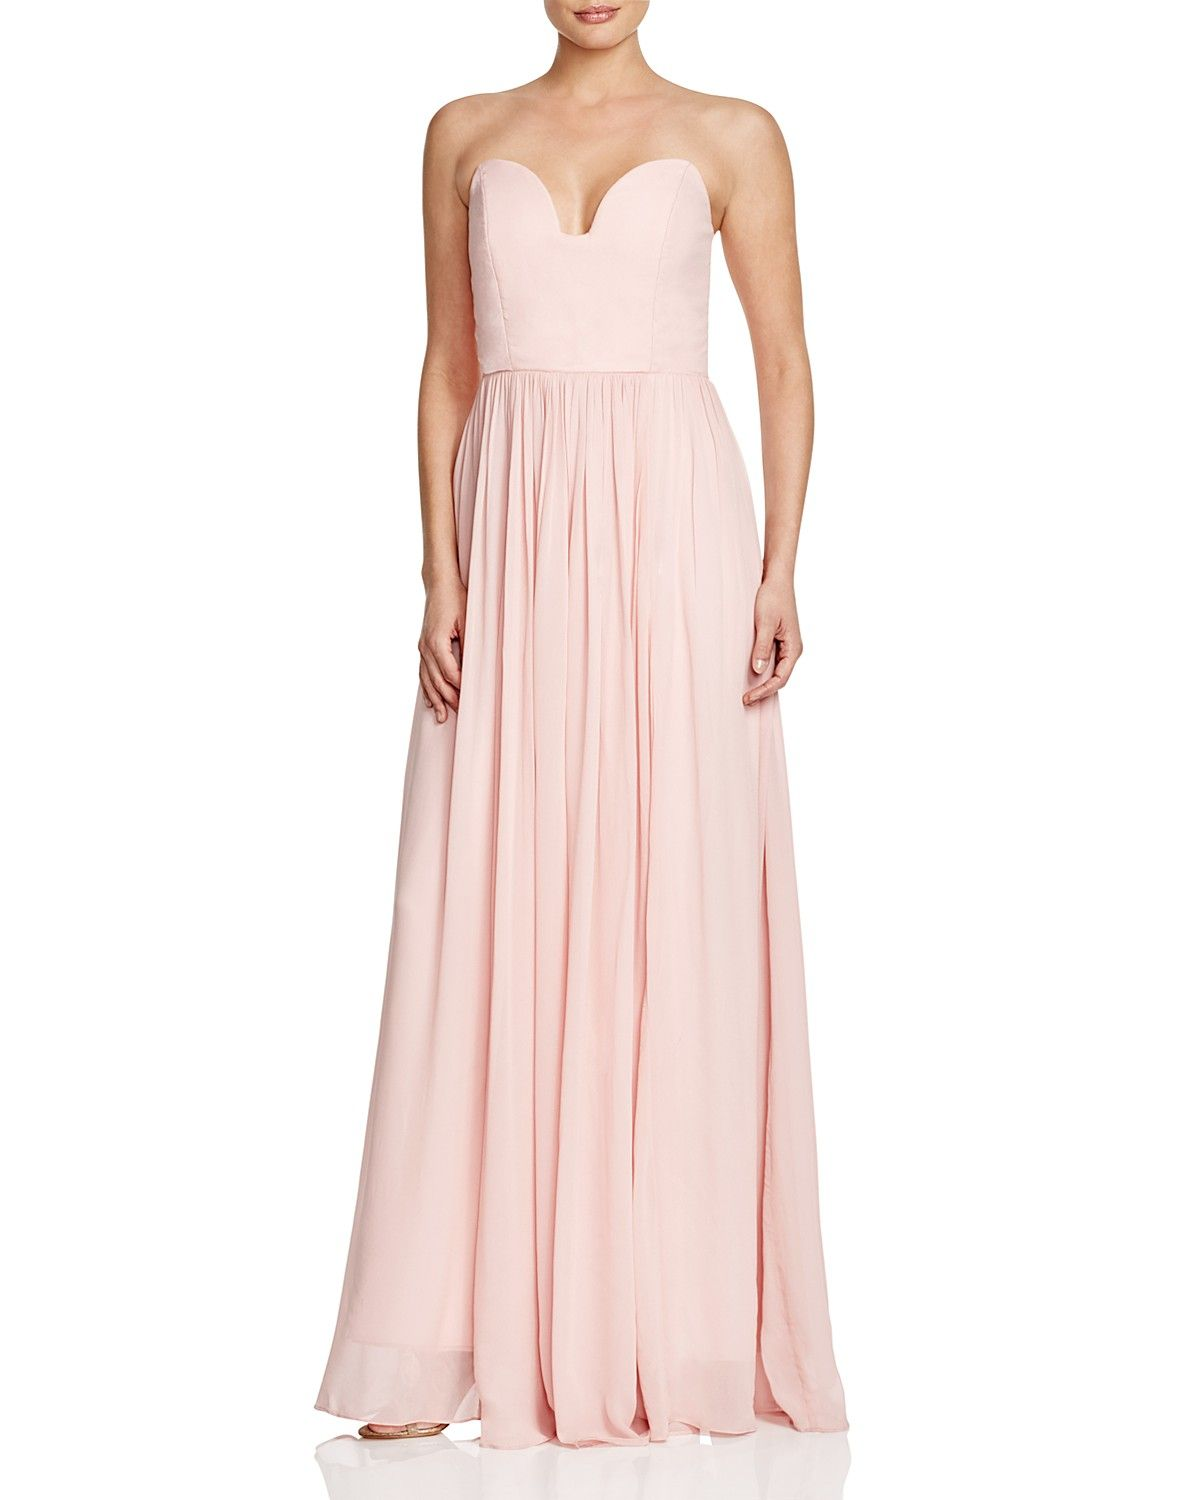 Nicole Miller Sweetheart Neck Strapless Gown Women Dresses Bloomingdale S Strapless Dress Formal Designer Prom Dresses Prom Dresses Gowns [ 1500 x 1200 Pixel ]